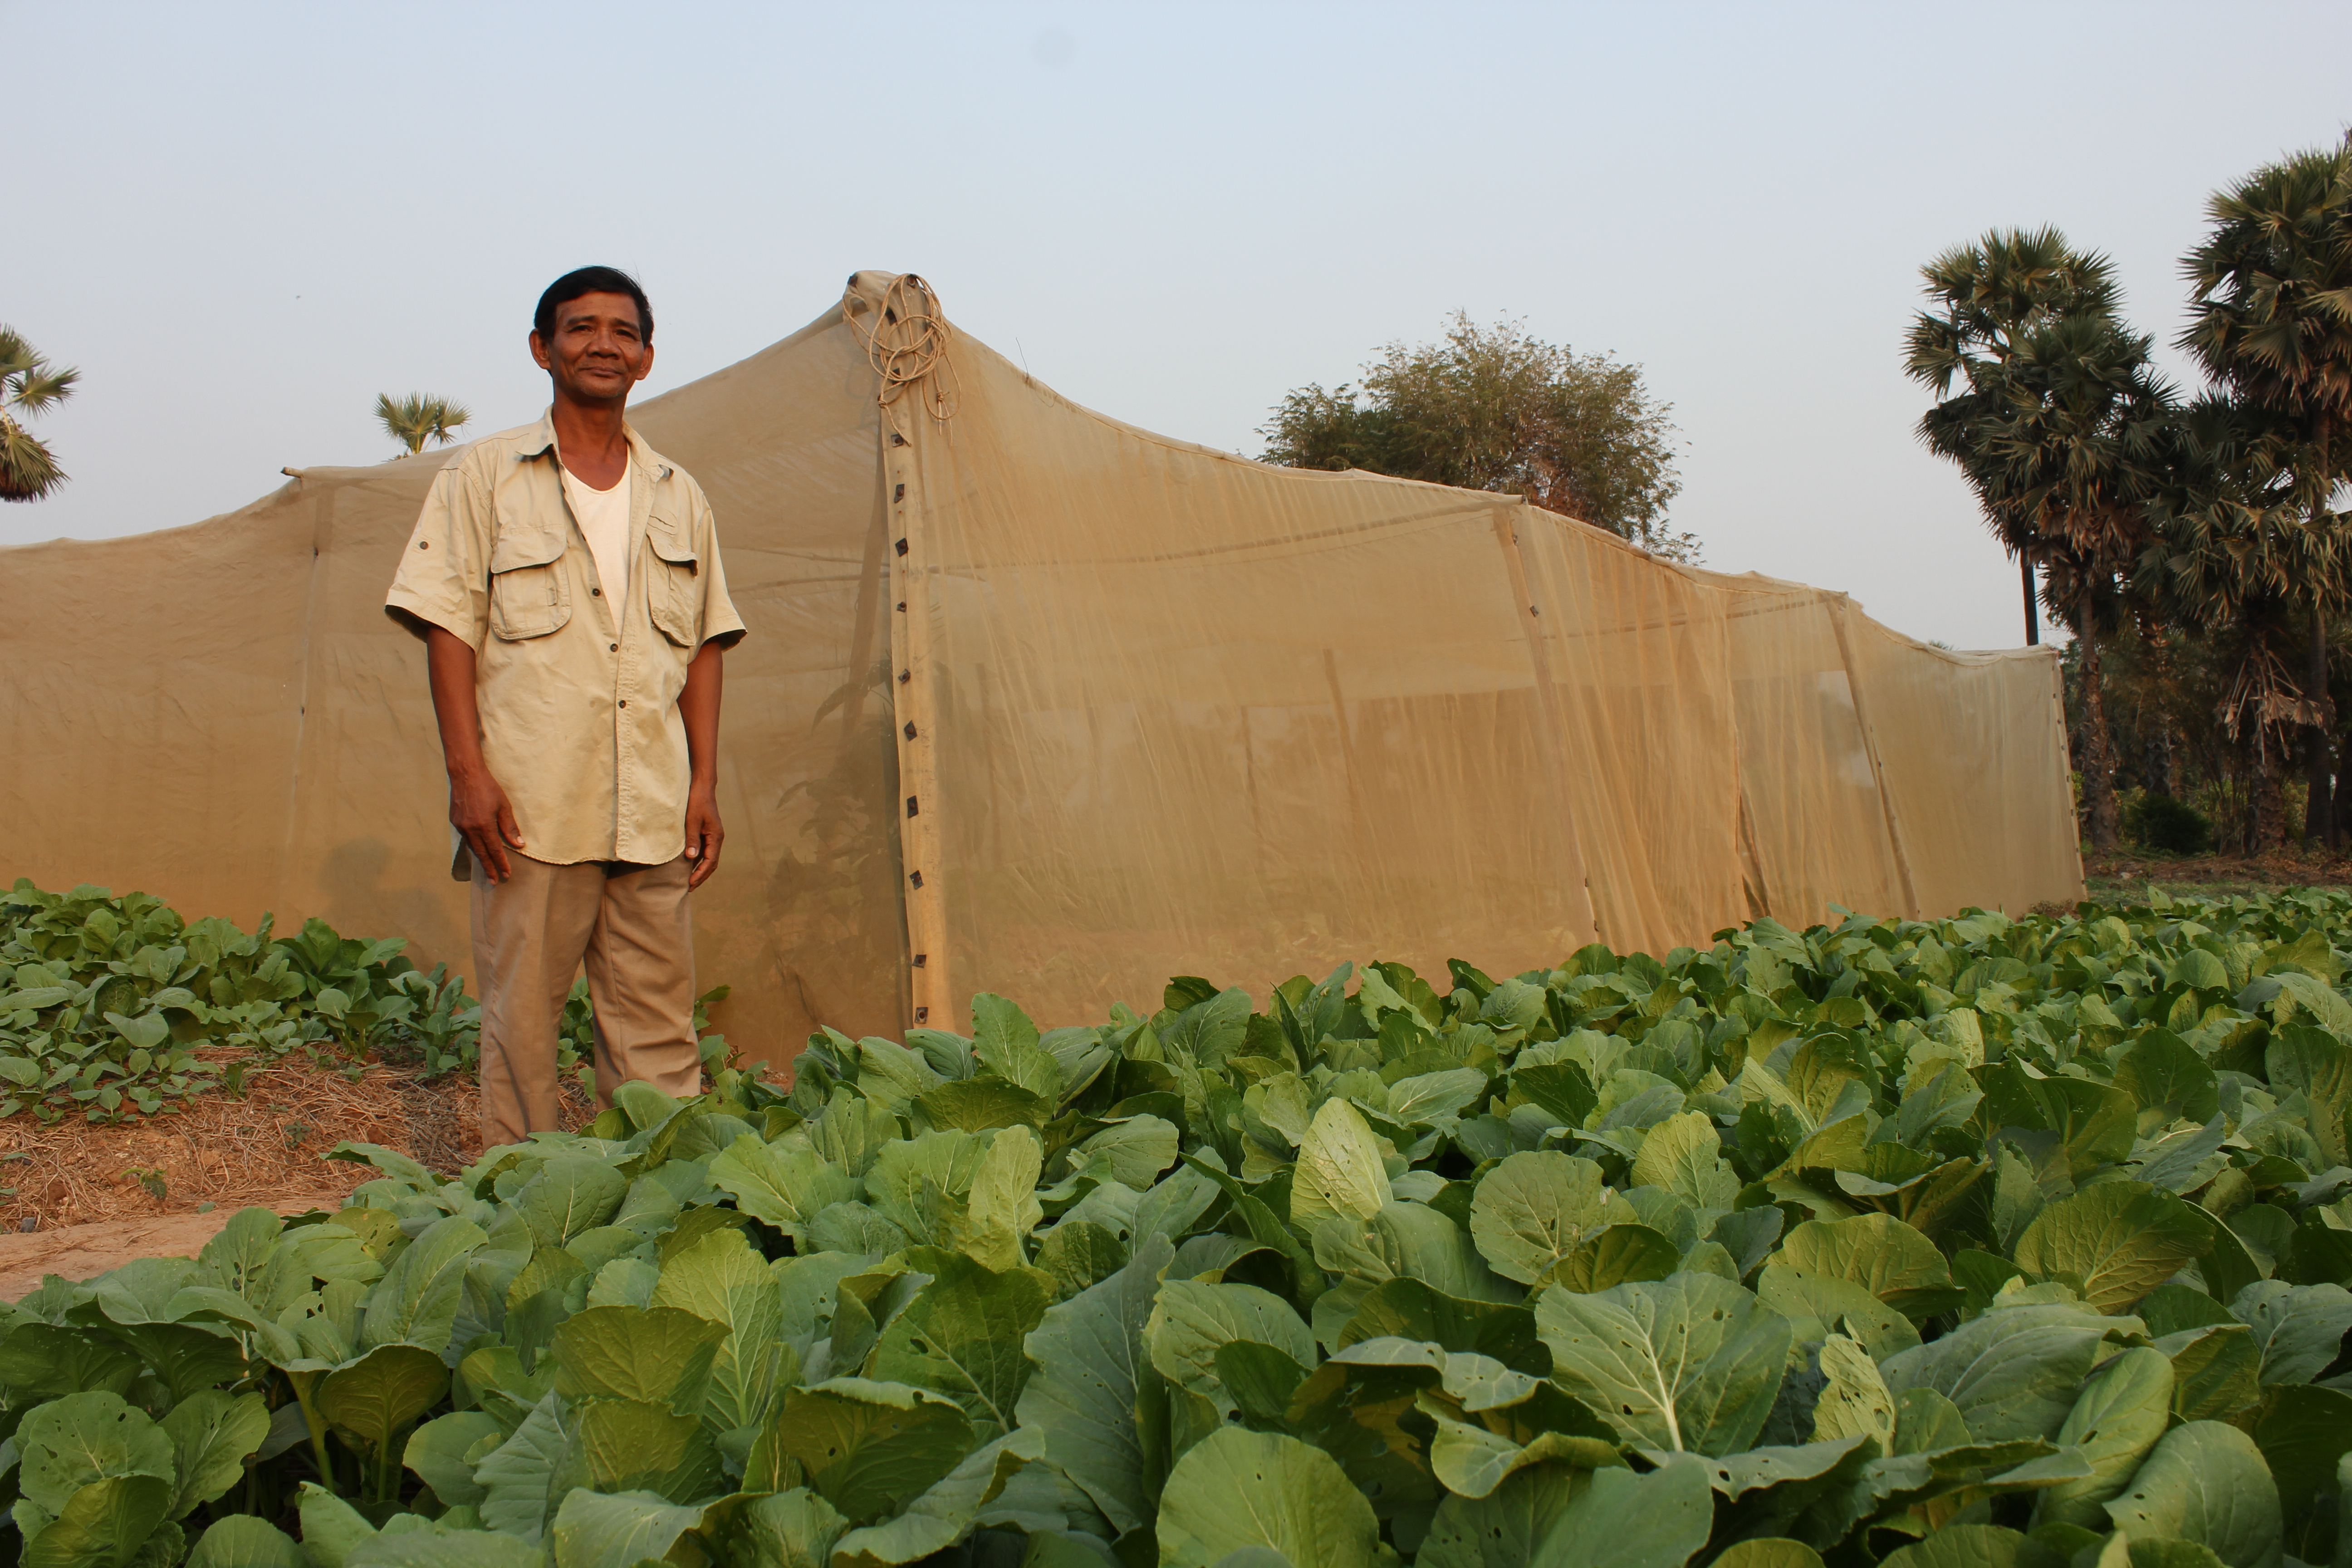 Cambodian man stands in a vegetable field with leafy greens growing, just outside of a nethouse